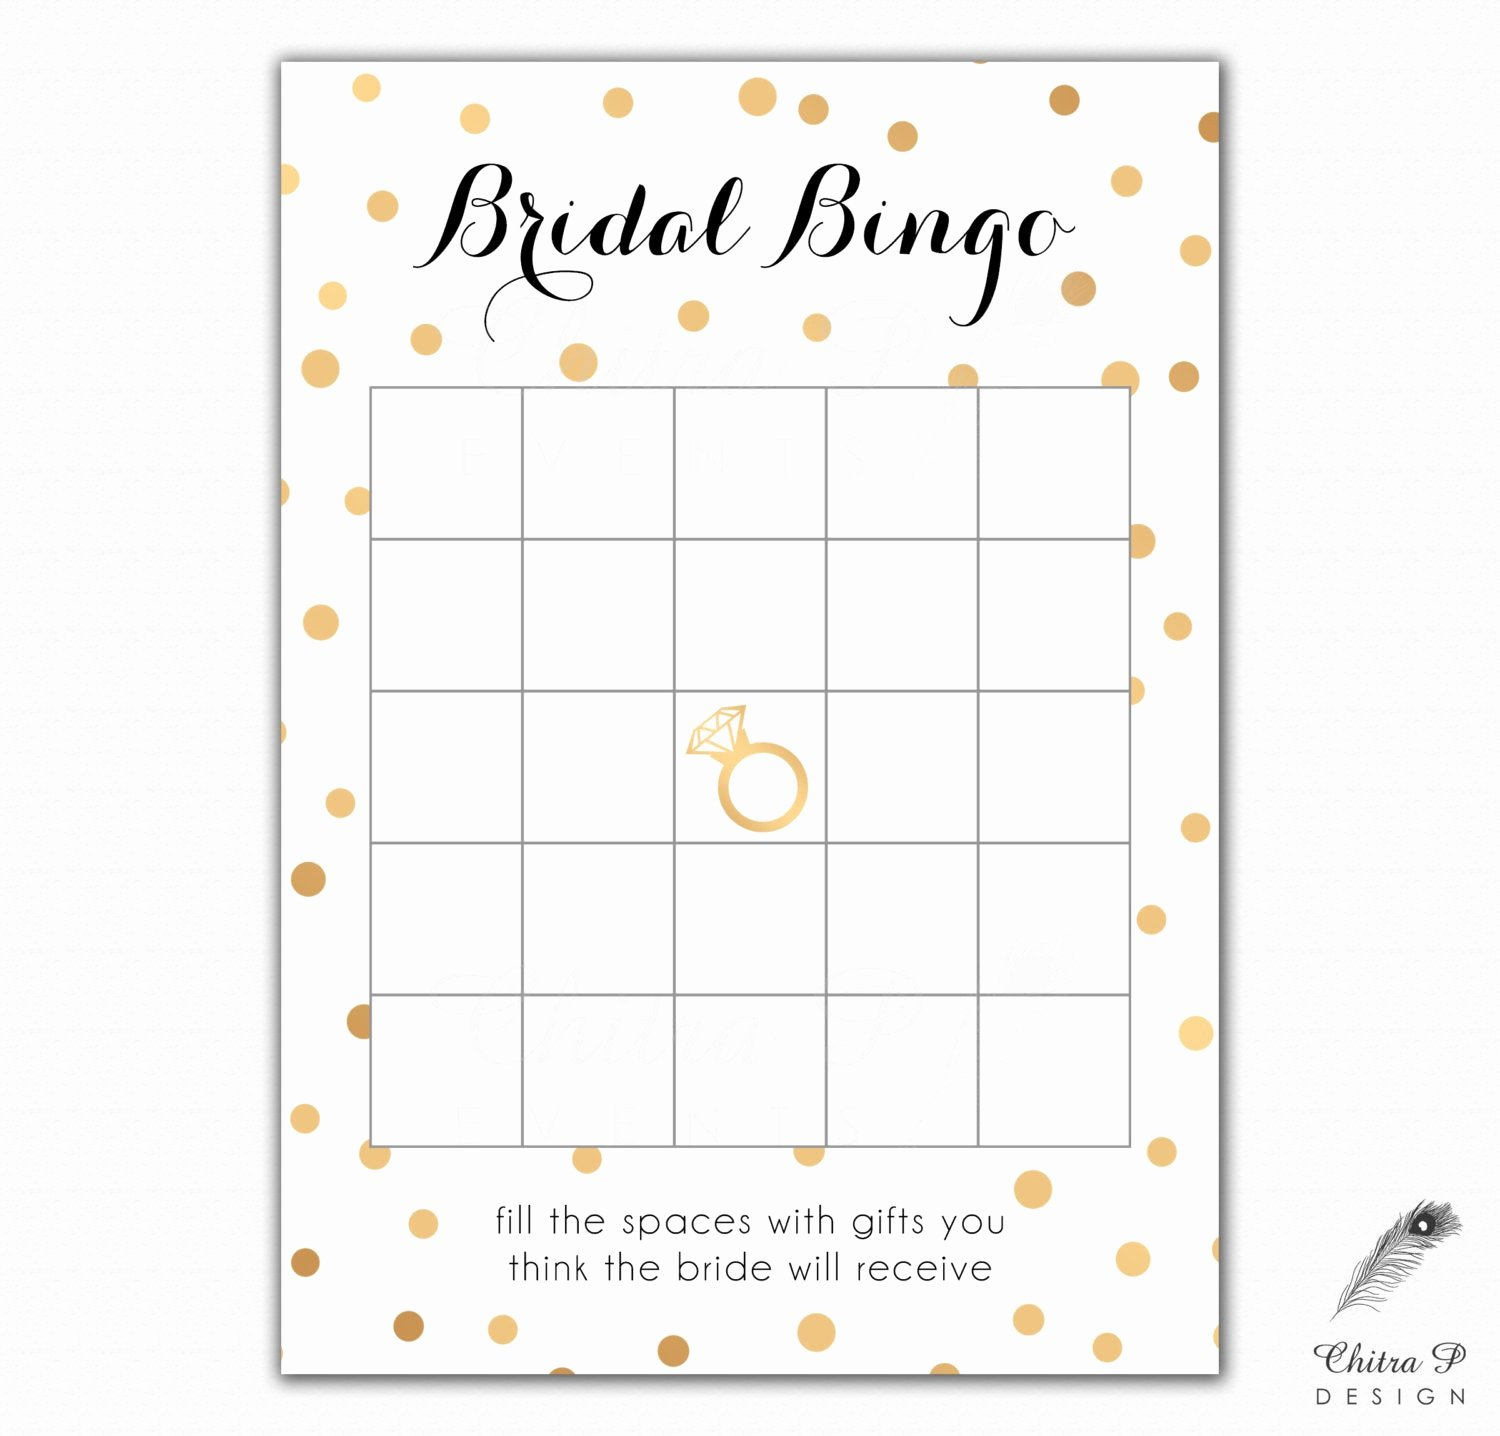 Bridal Shower Bingo Template Free Inspirational Black & Gold Bridal Shower Bingo Cards Printed or Printable